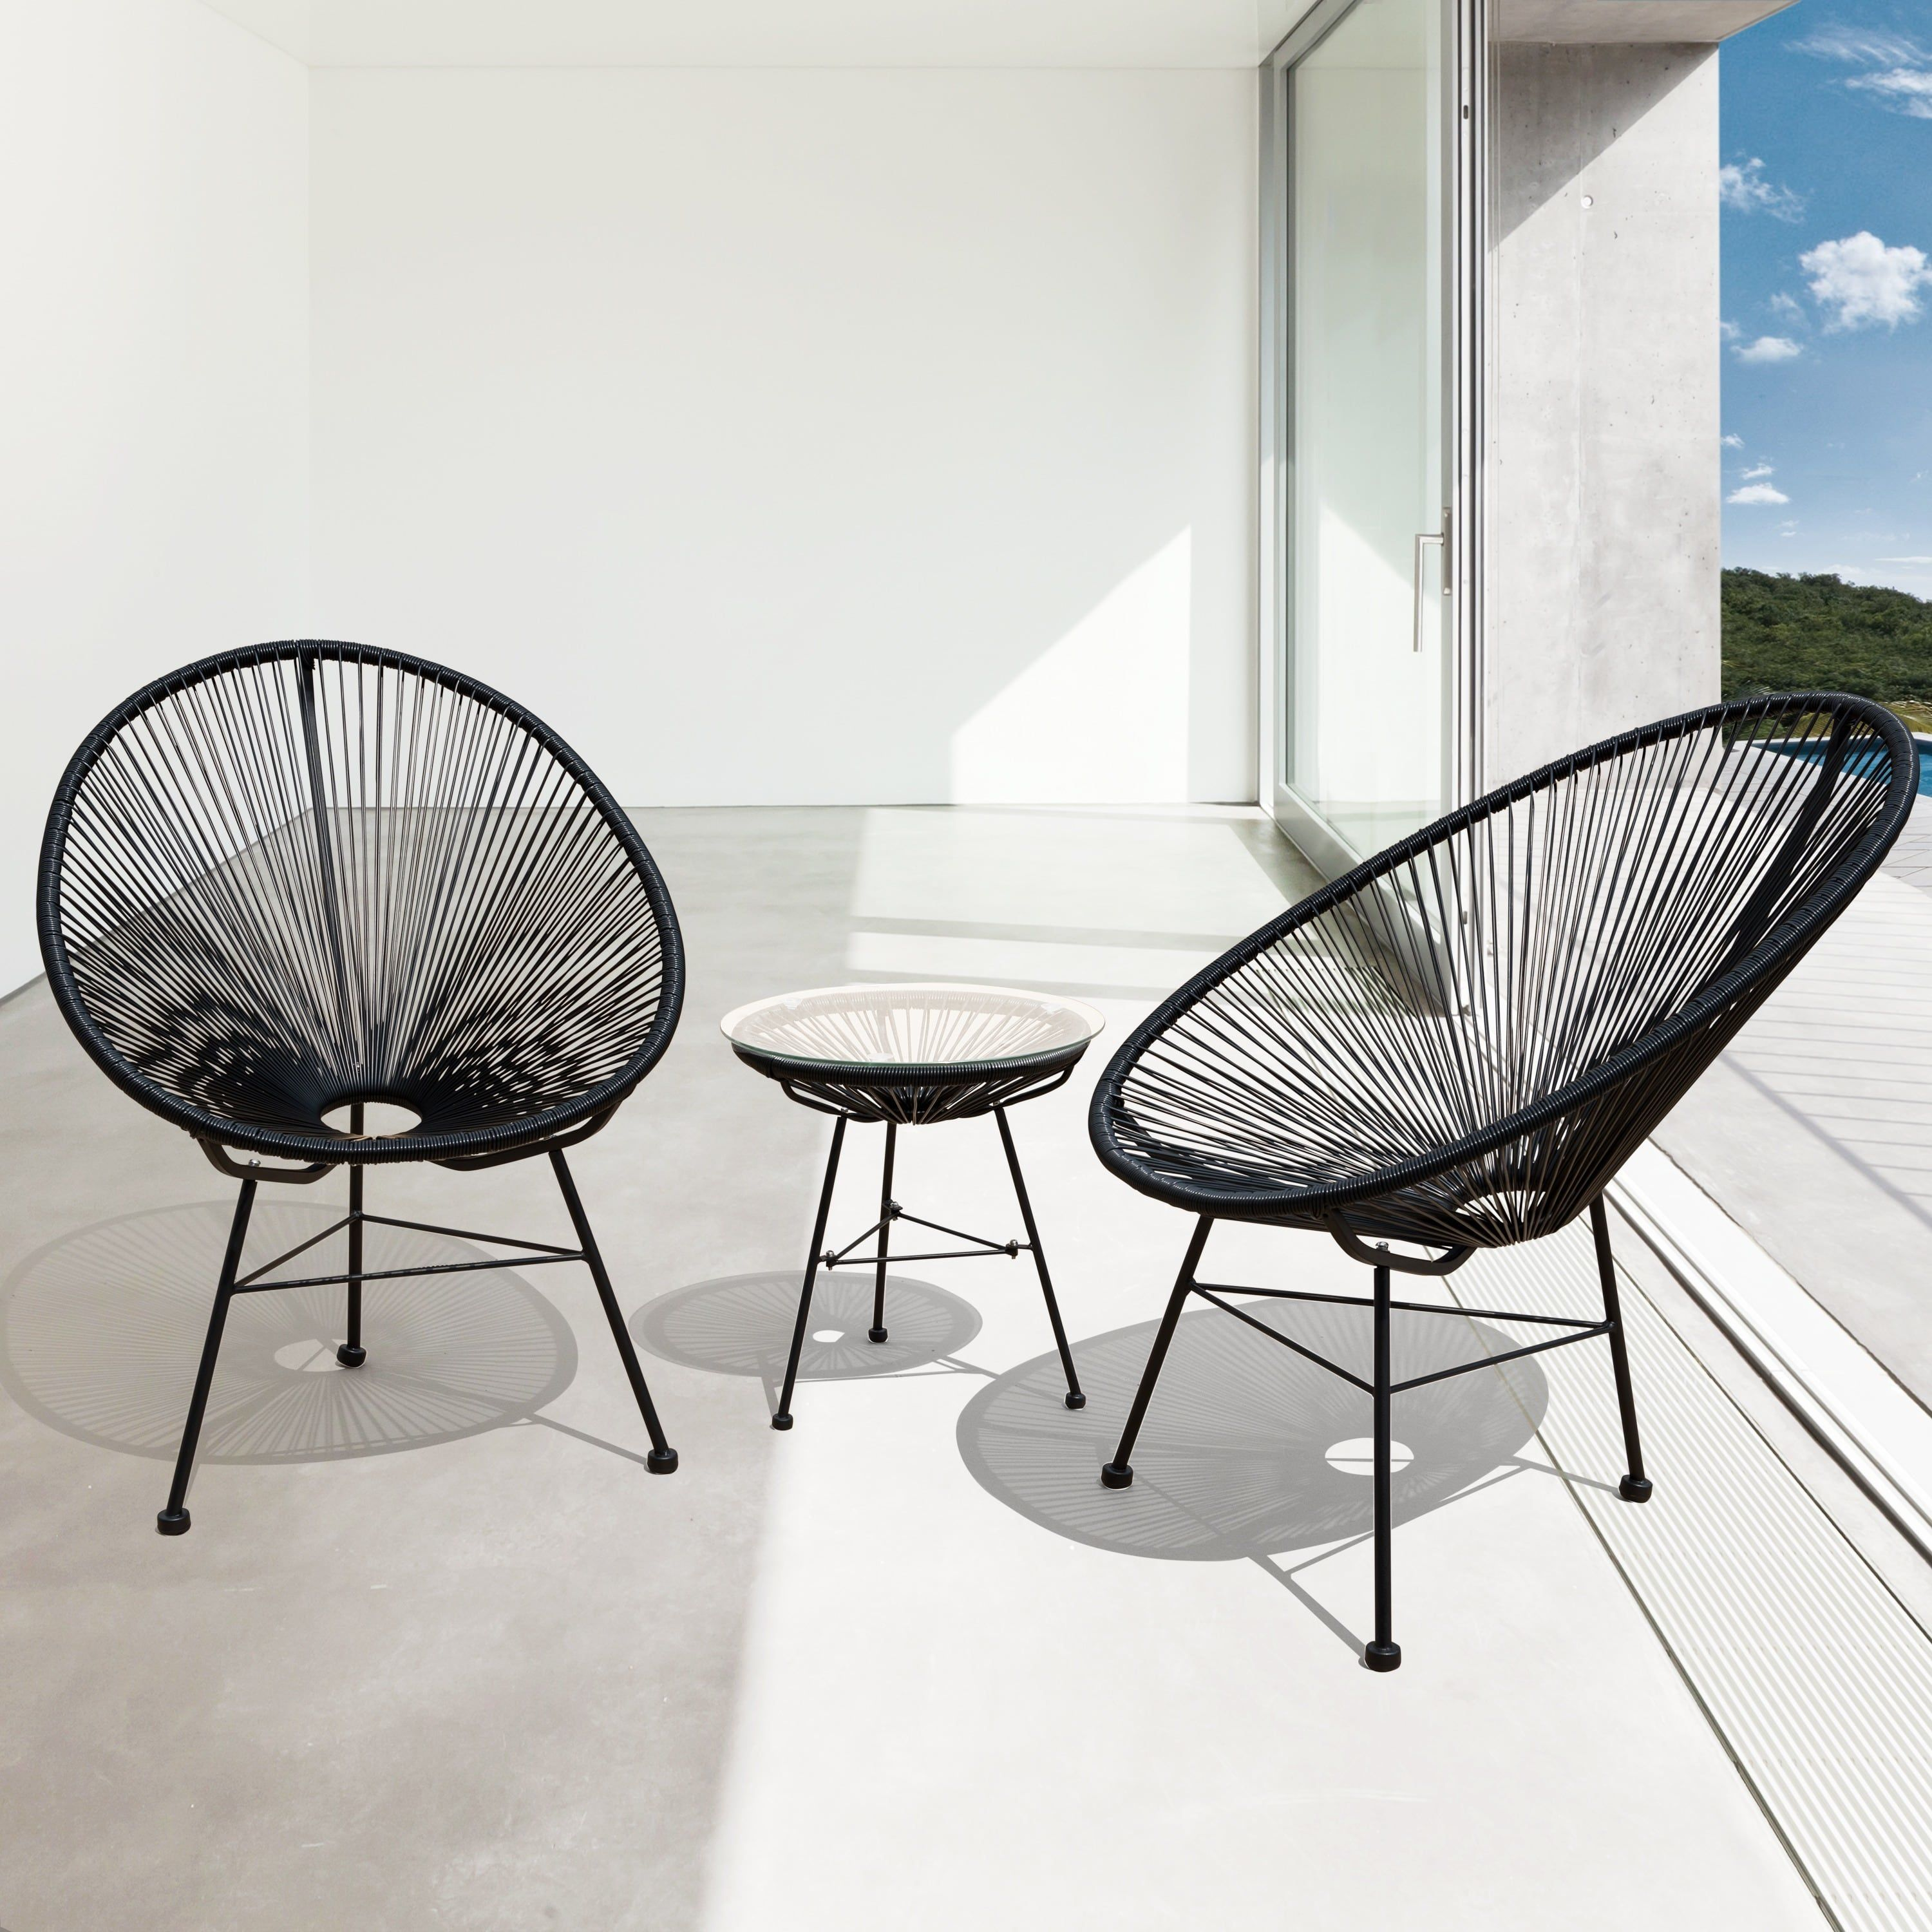 Sarcelles Modern Wicker Patio Chairs By